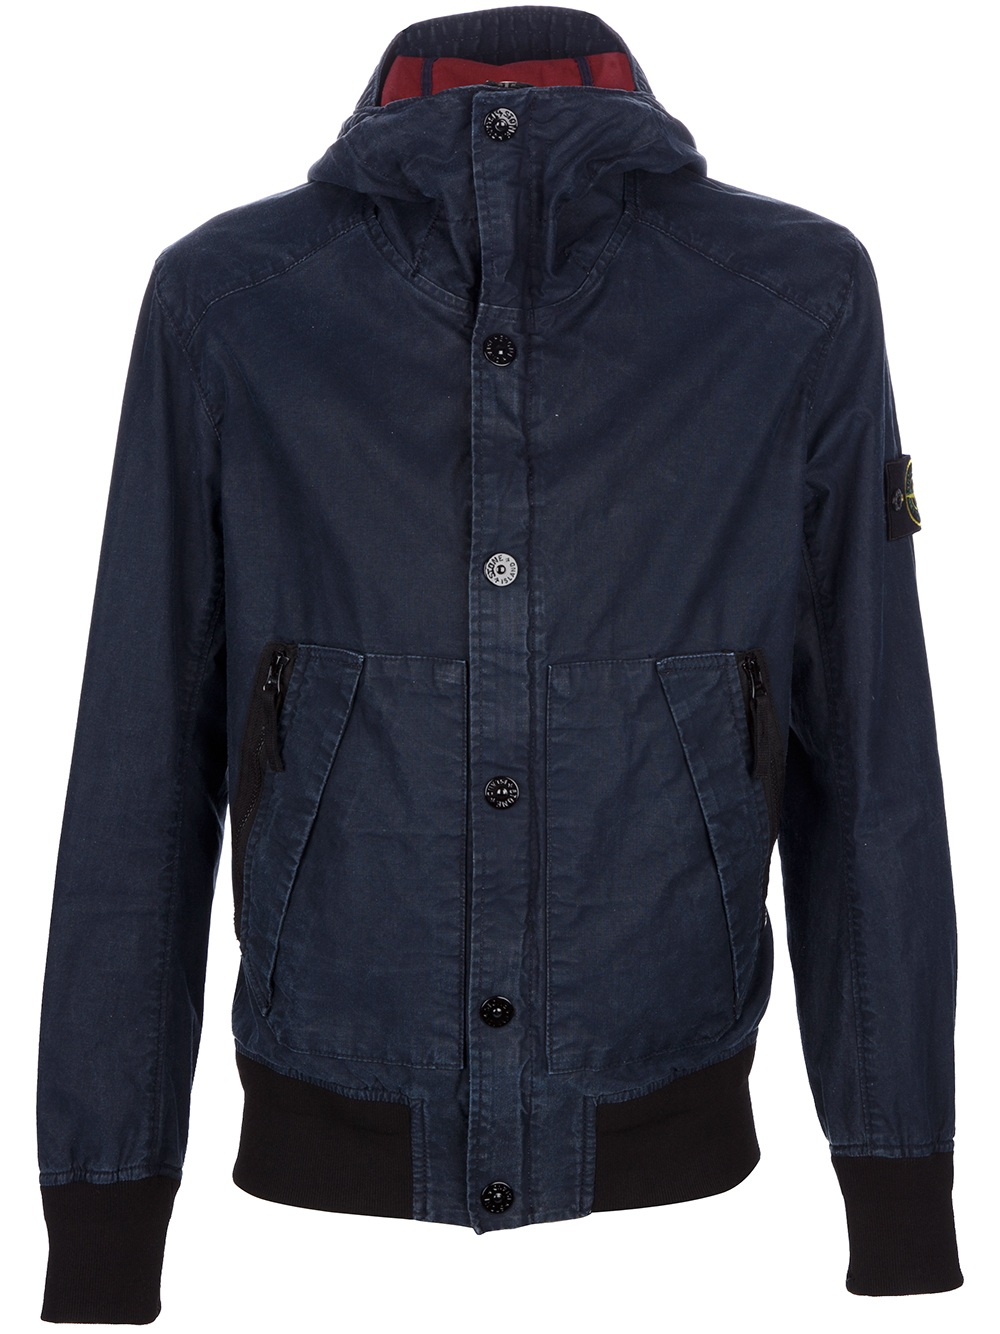 Stone island Hooded Jacket in Blue for Men - Lyst